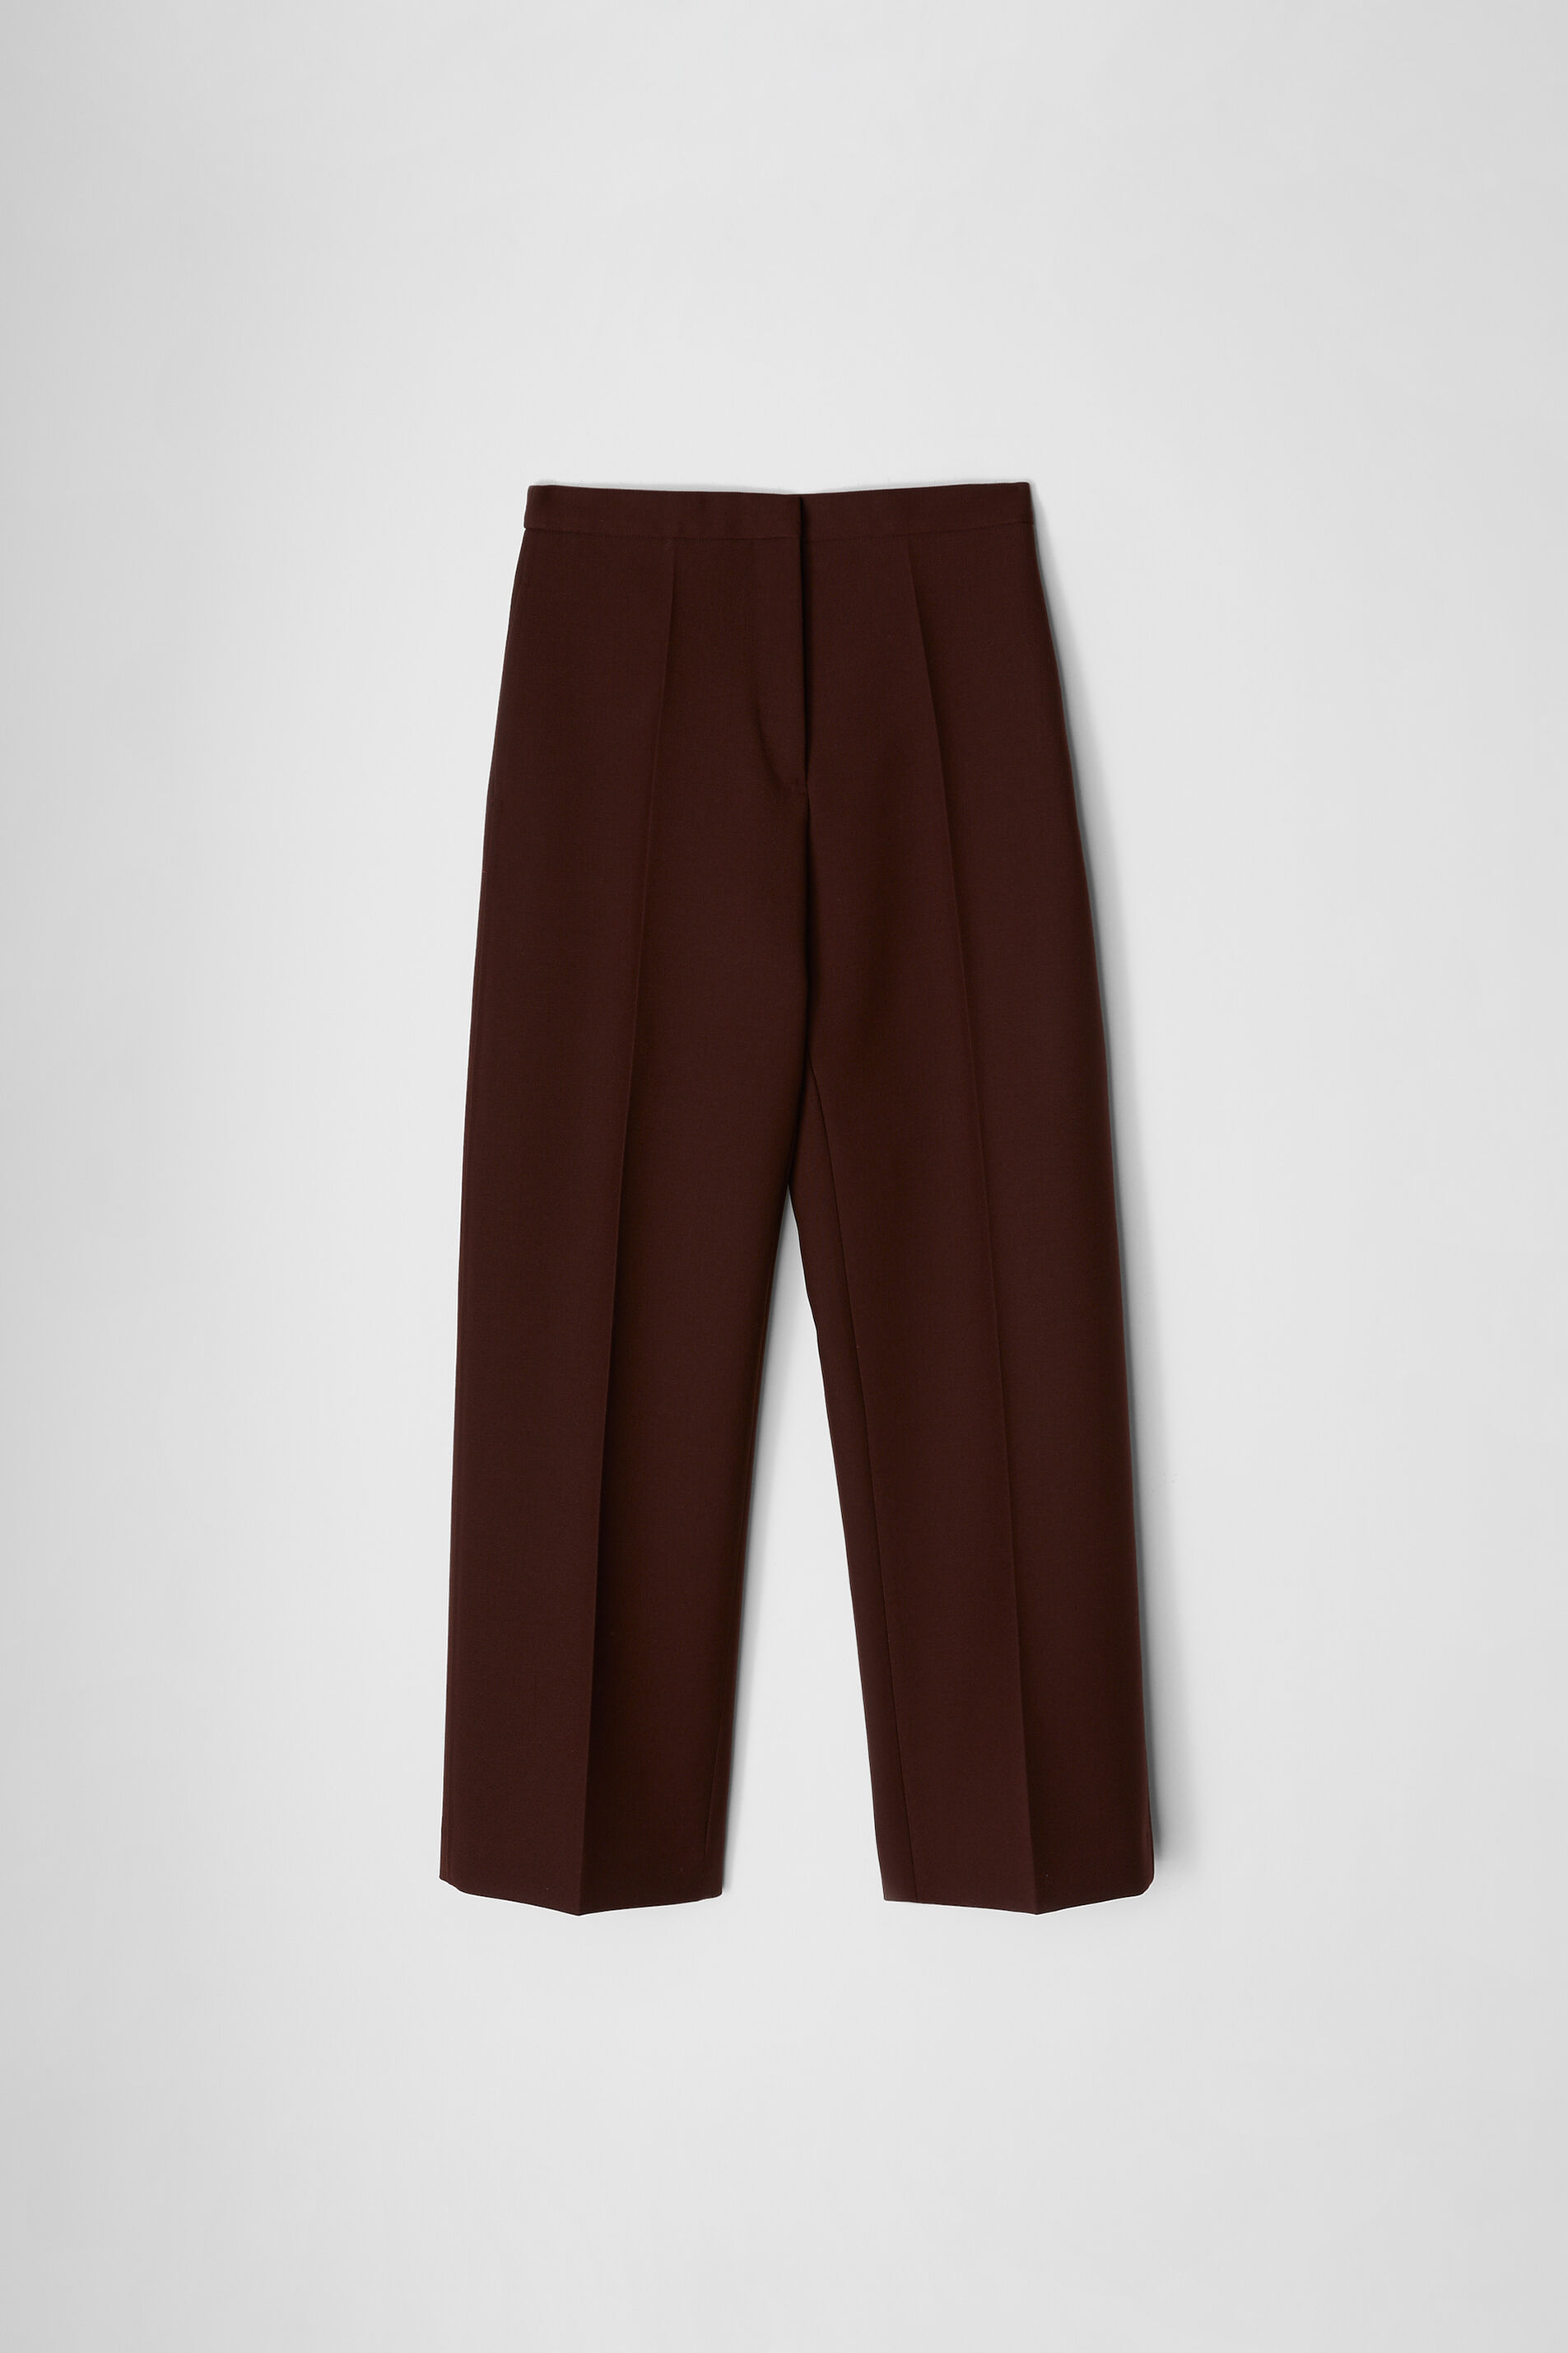 Tailored Trousers, dark brown, large